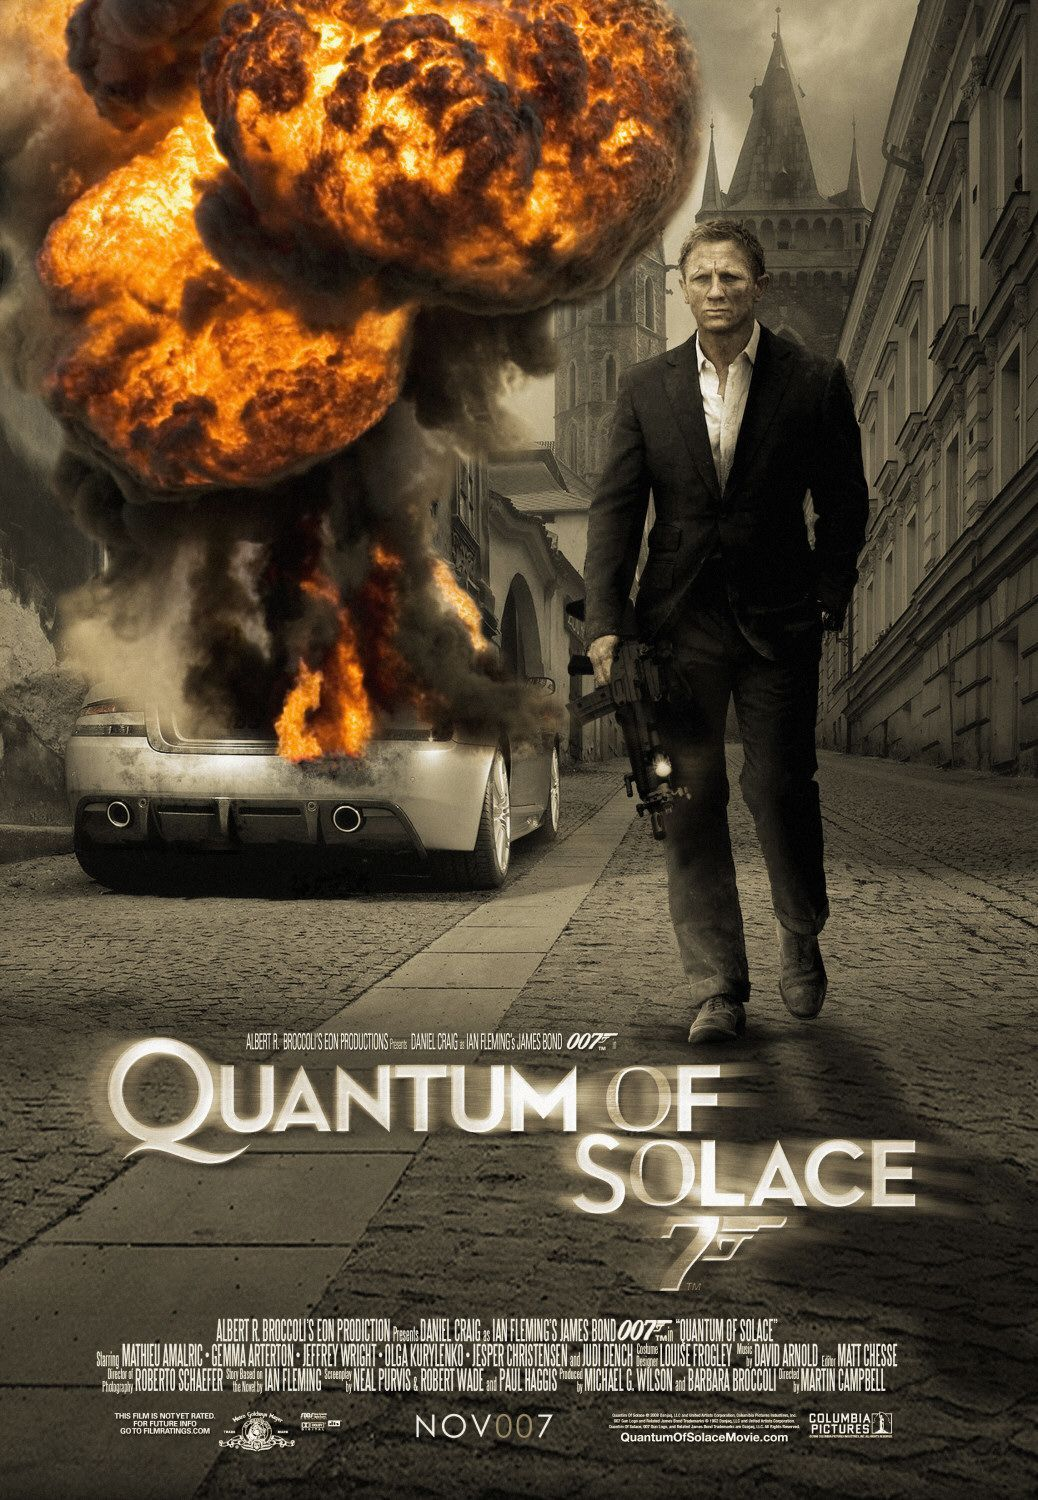 Pin By Blackbriar On League Of Heroes James Bond Movie Posters